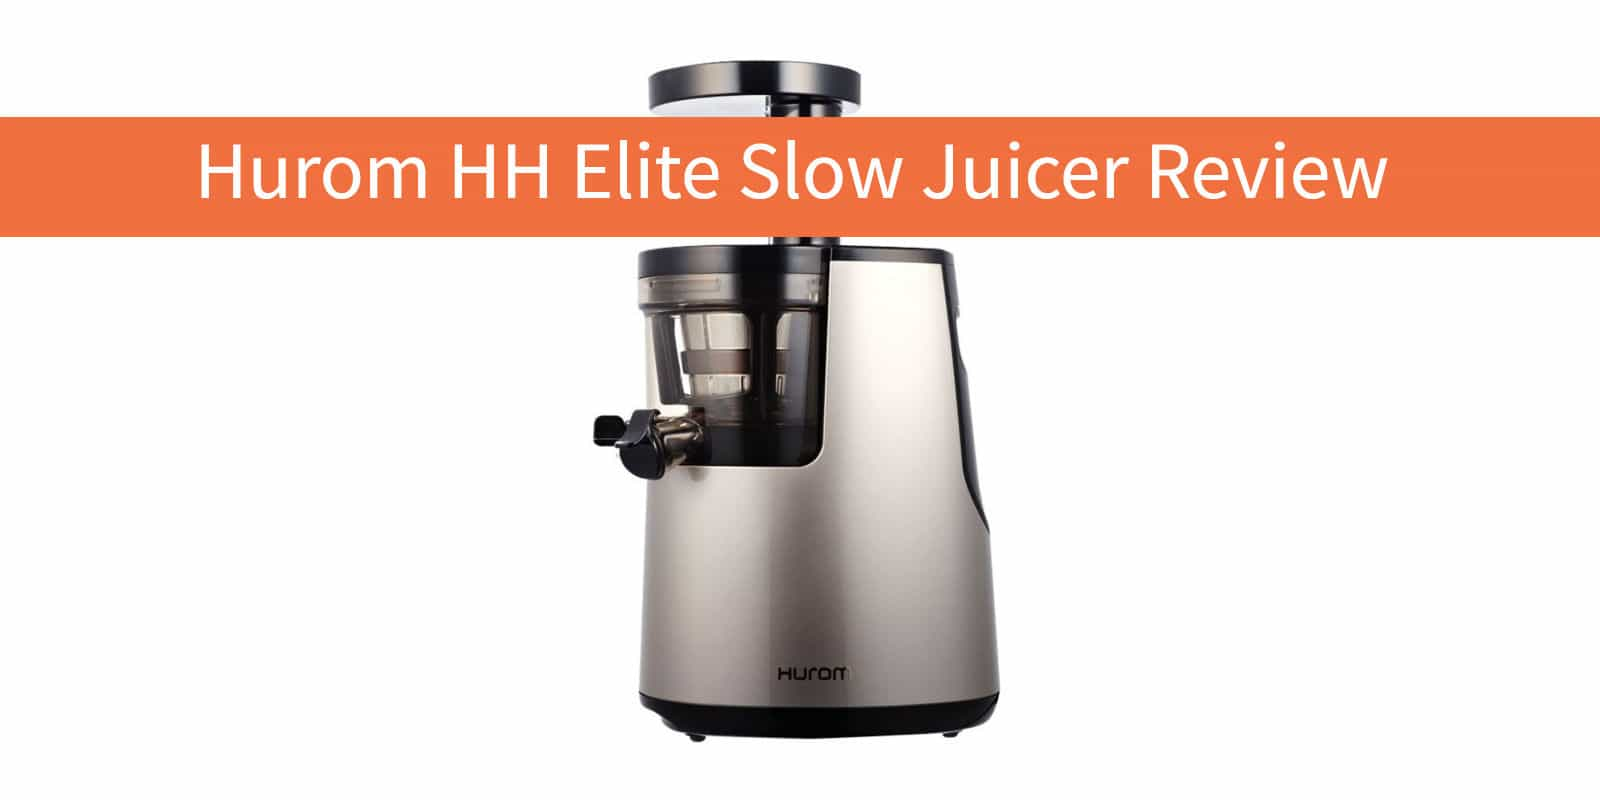 Slow Juicer Test 2018 : Hurom HH Elite Slow Juicer Review (2018) vegByte